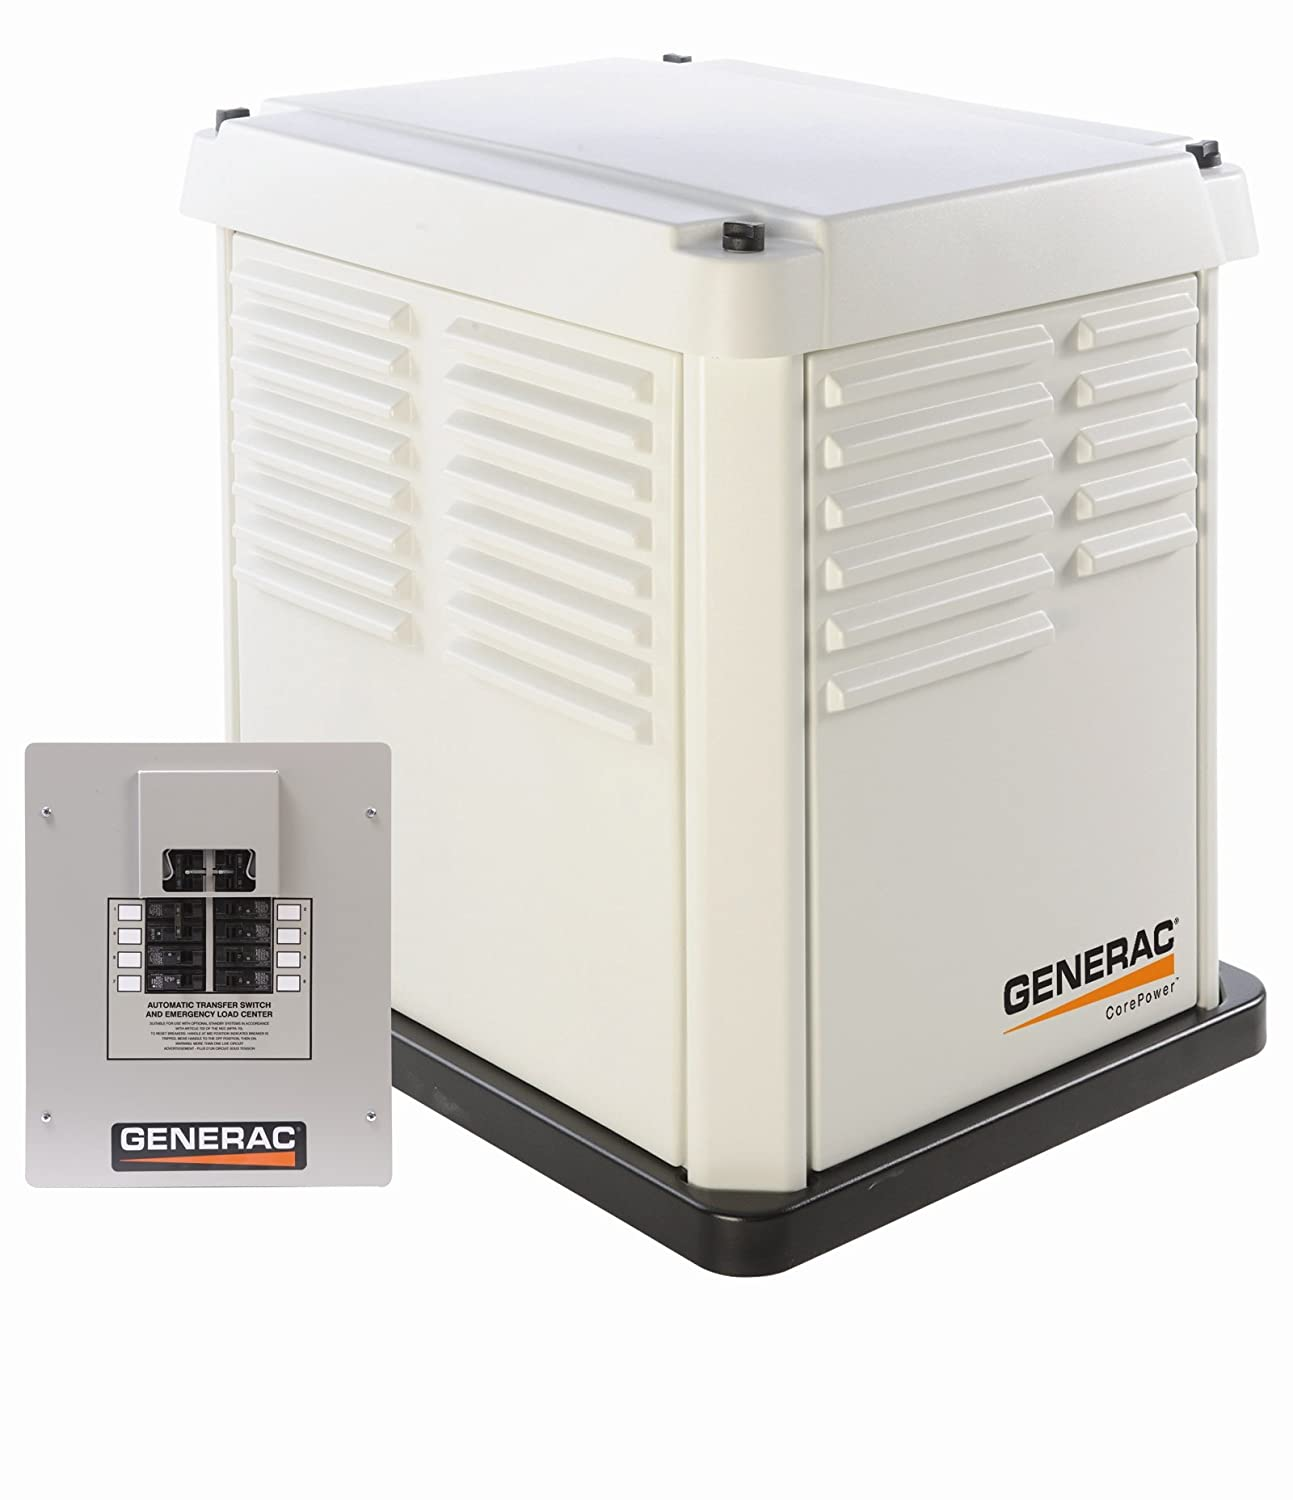 Generac 5837 Corepower Series 7000 Watt Air Cooled Natural Gas Wiring Instructions Liquid Propane Powered Standby Generator With Transfer Switch Garden